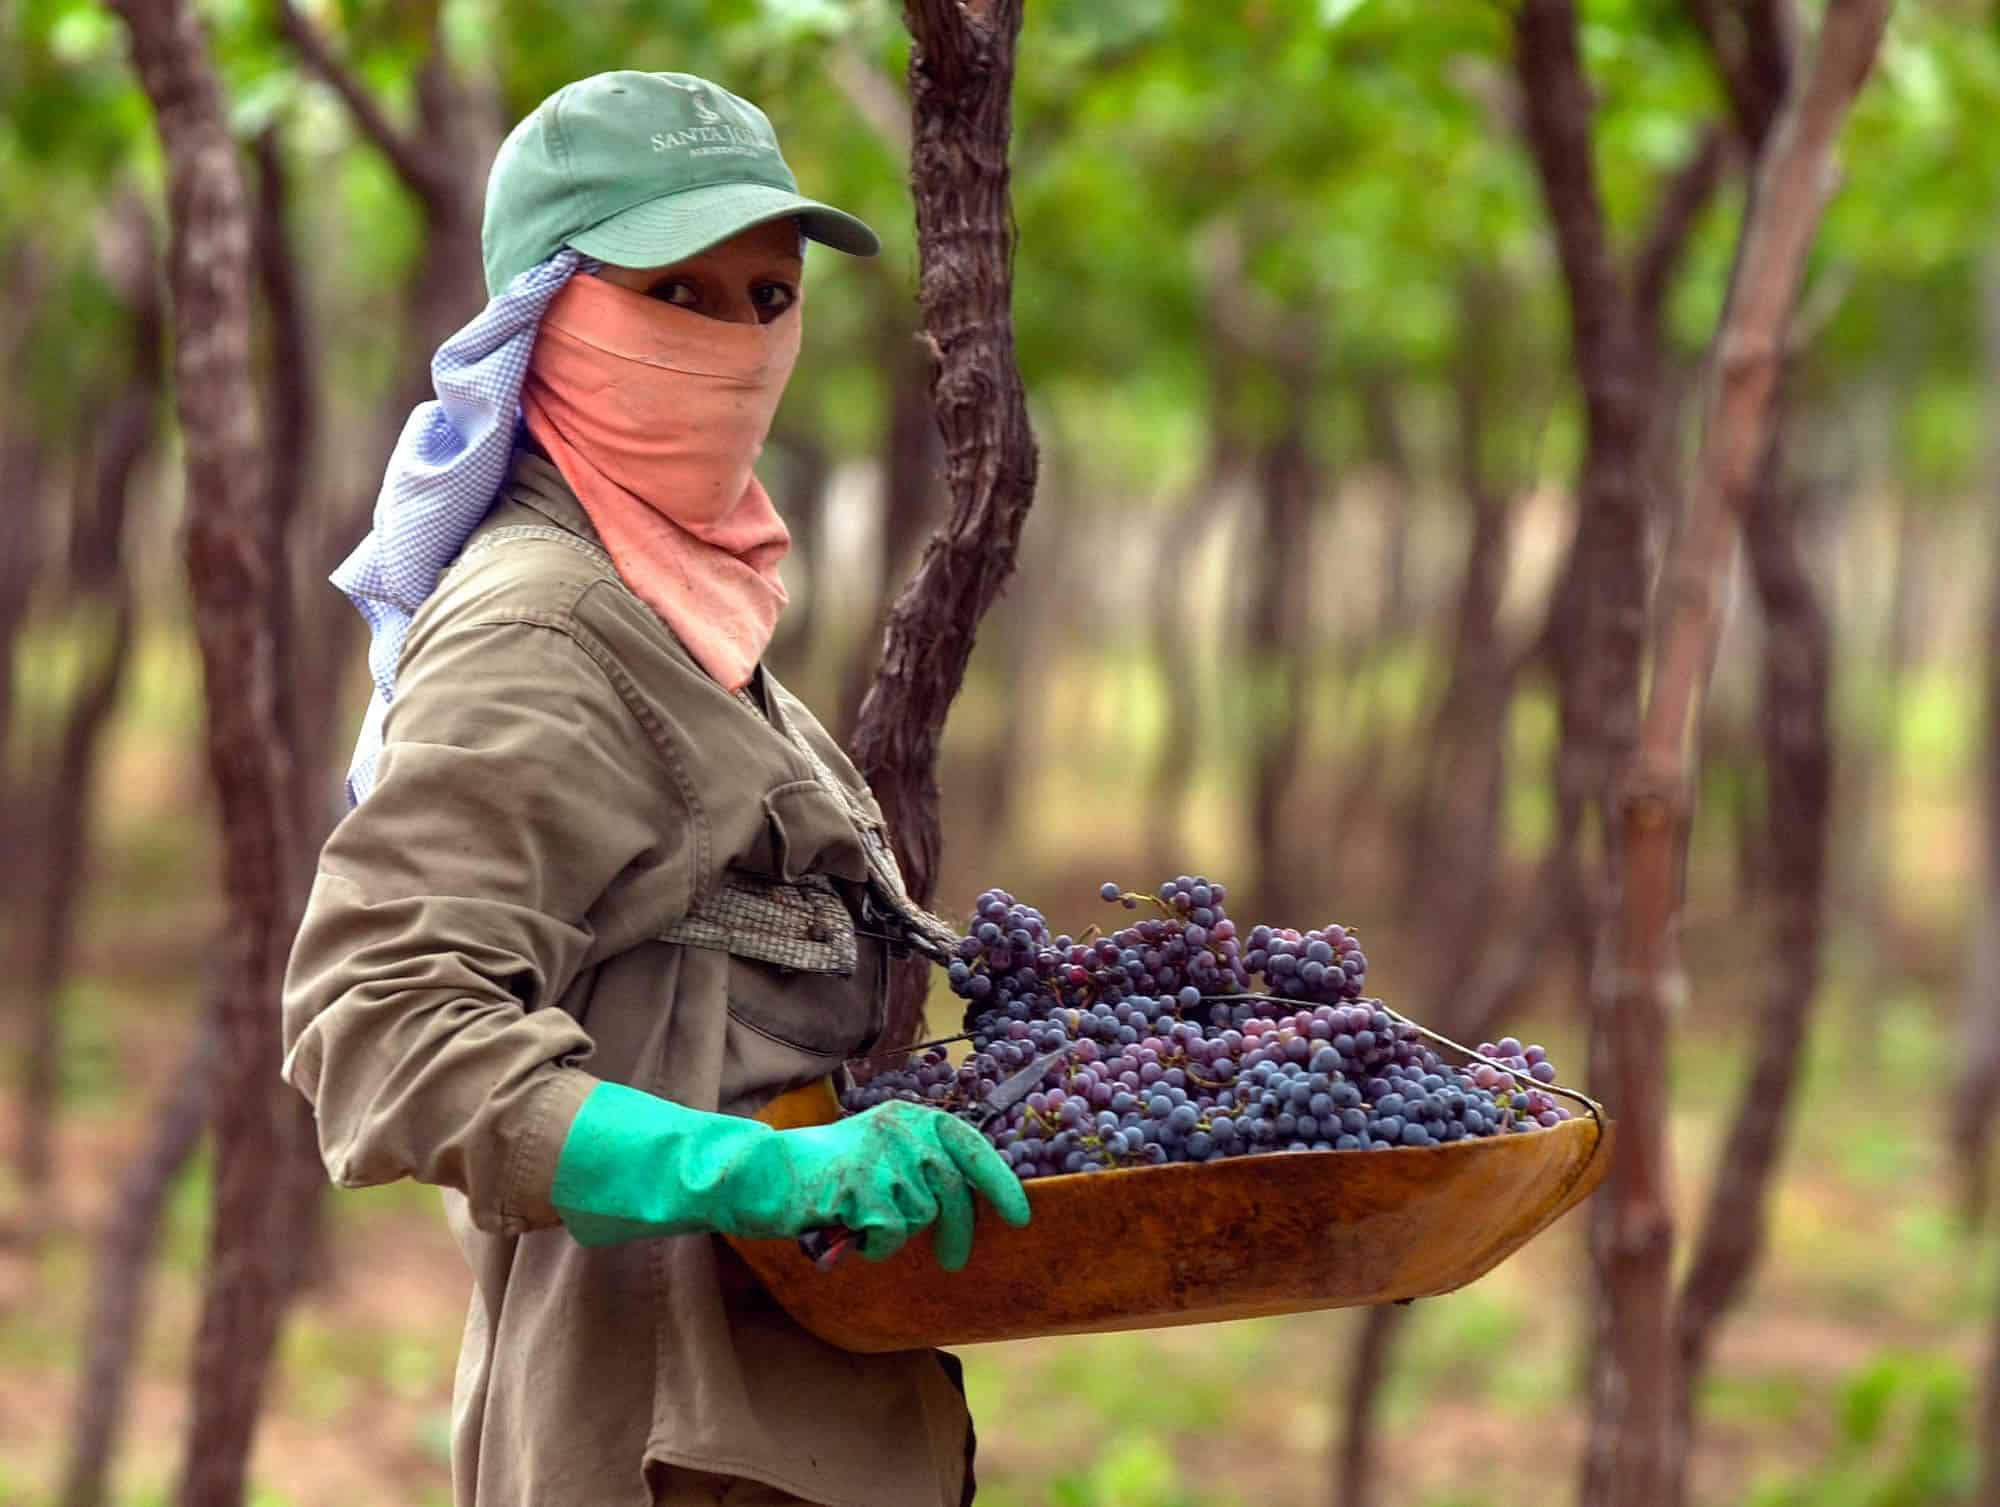 a worker harvests grapes in 2003 near the city of Mendoza, Argentina.